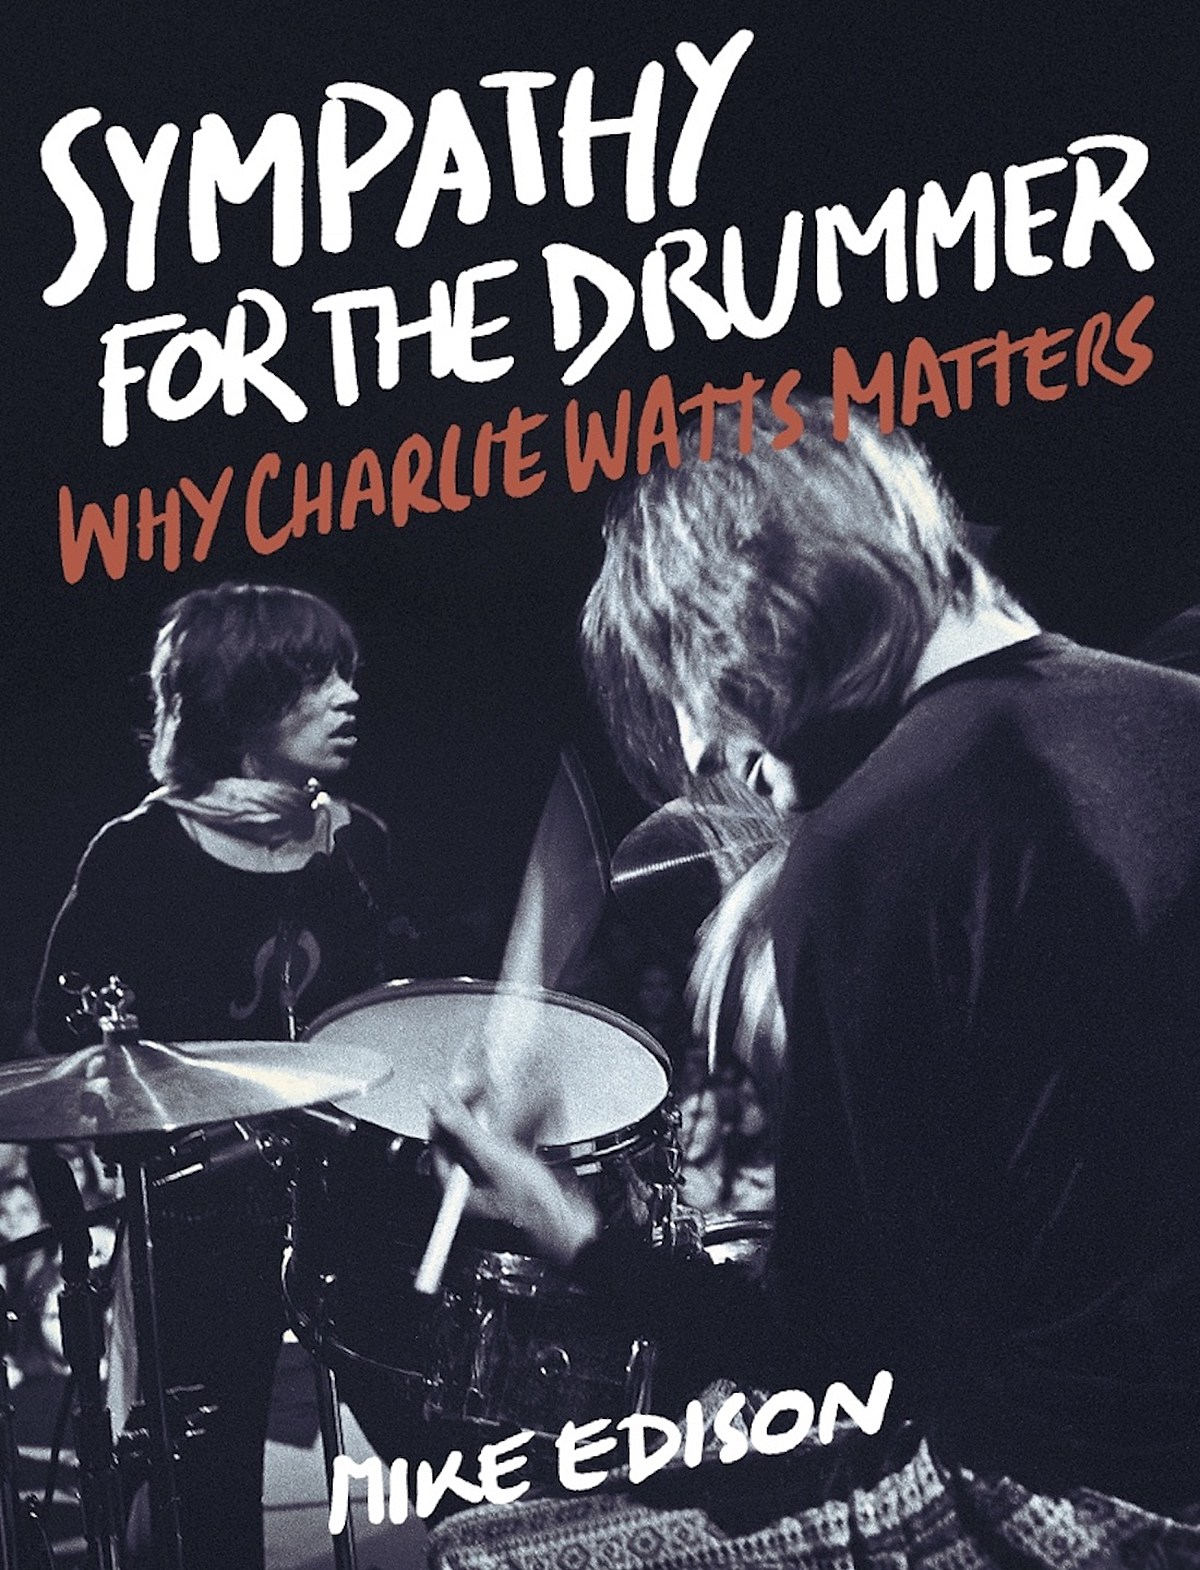 Charlie Watts (Rolling Stones) book on the way; author Mike Edison made a promo video, touring